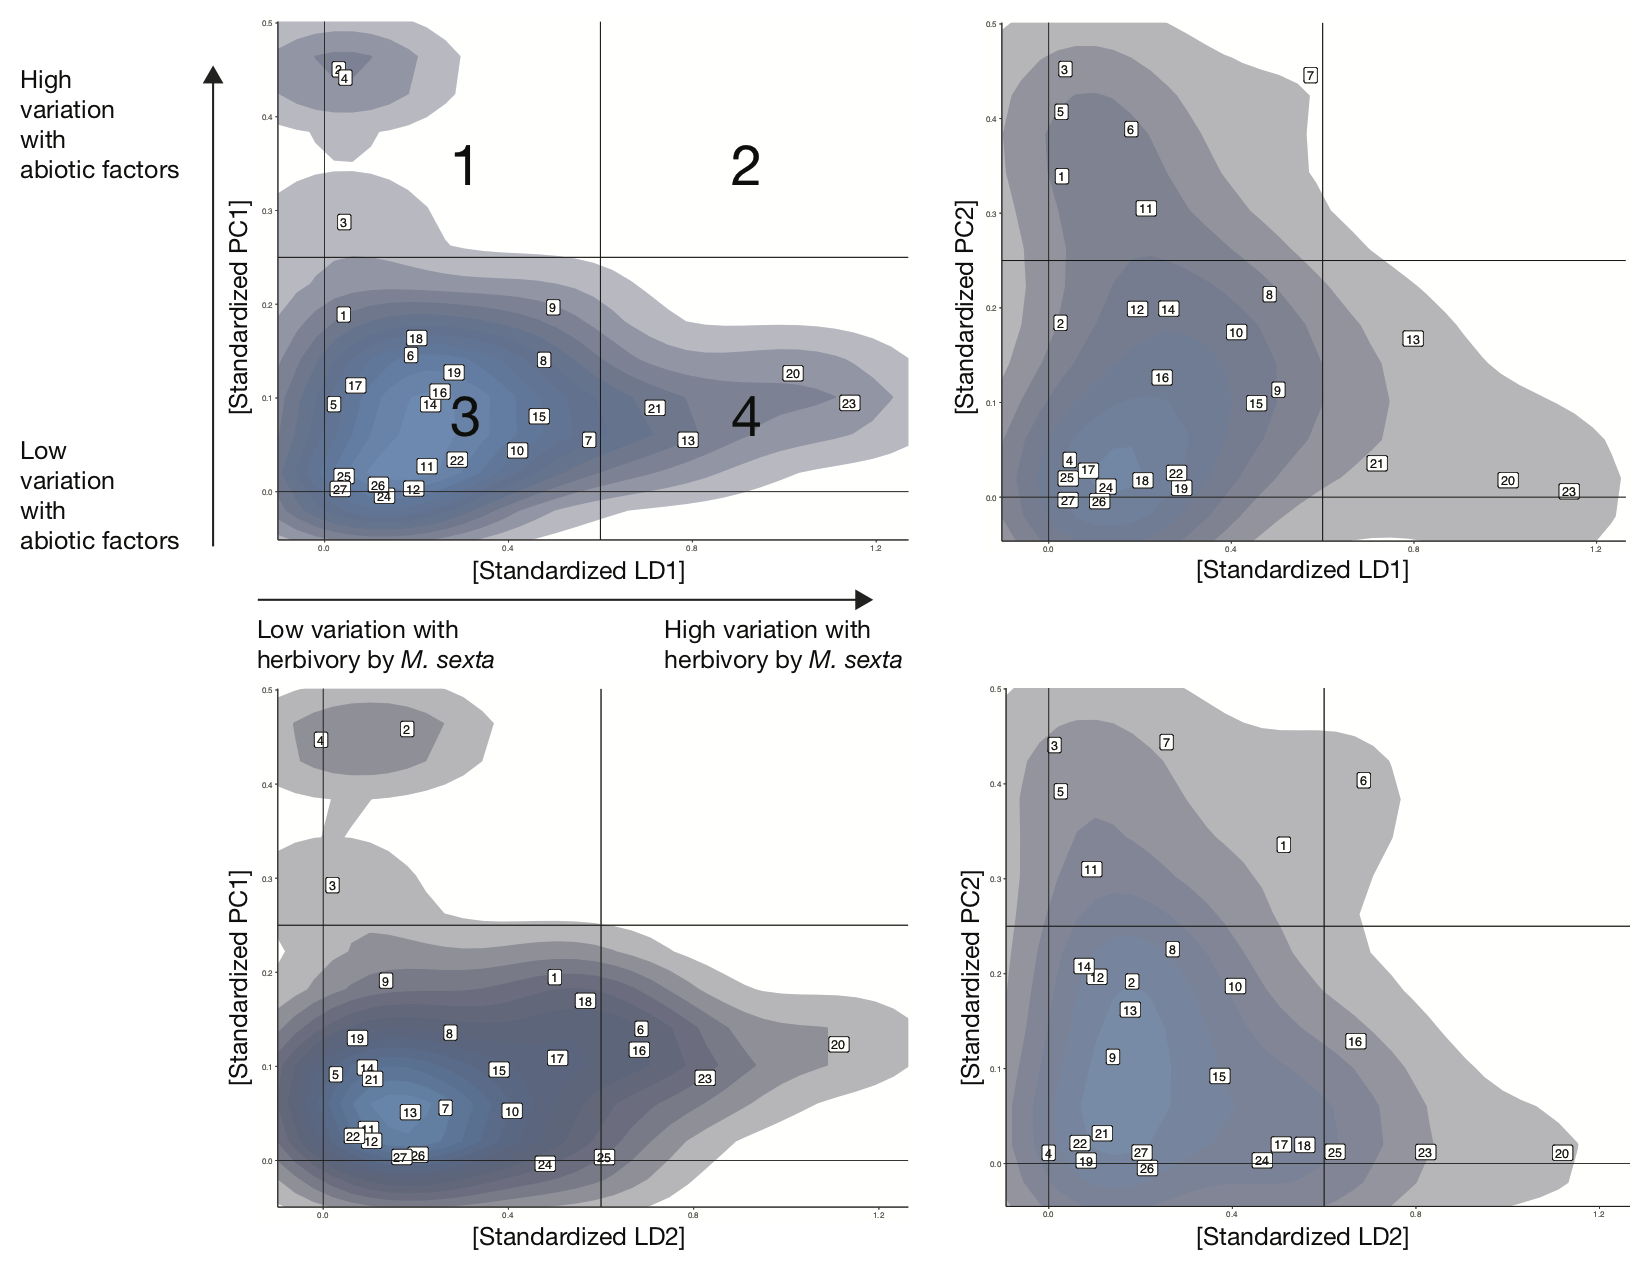 Density plots of Airbone volatile blends of  Datura wrightii  in stimulus space. Some compounds (labels) vary more with herbivory, while others vary more with changes in environemntal gradients